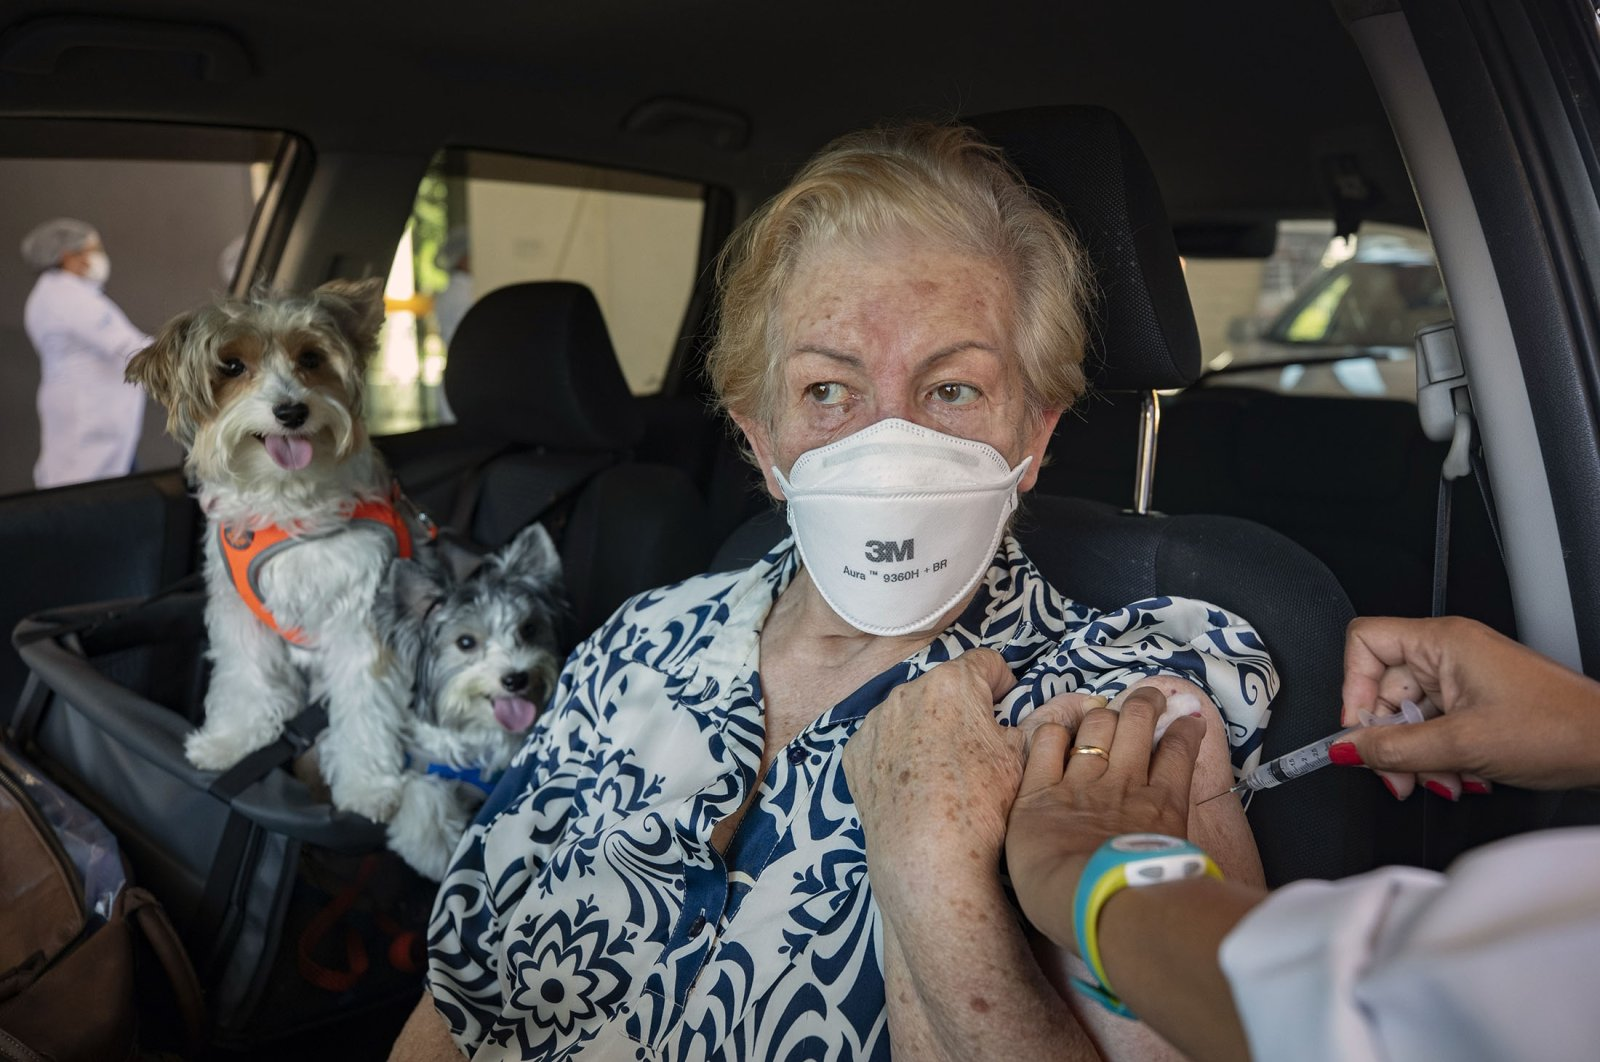 A woman gets a shot of the Sinovac COVID-19 vaccine while she sits in her car with her pets during a priority vaccination program for seniors at a drive-thru site set up in the Pacaembu soccer stadium parking lot in Sao Paulo, Brazil,  March 3, 2021. (AP Photo)